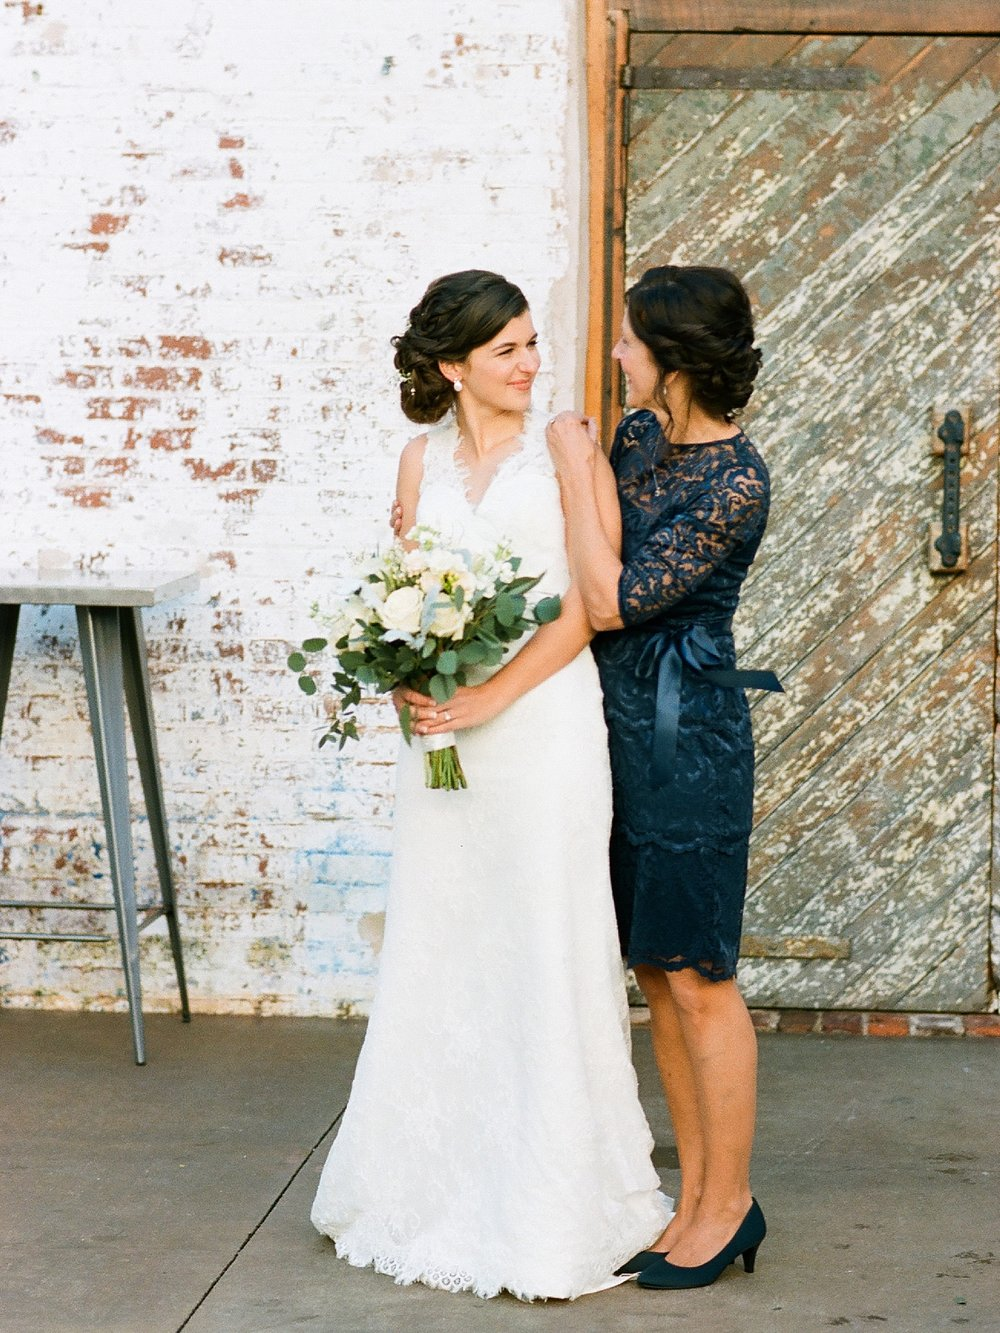 The Engine Room Atlanta Wedding Photographer Christina Pugh 19.jpg